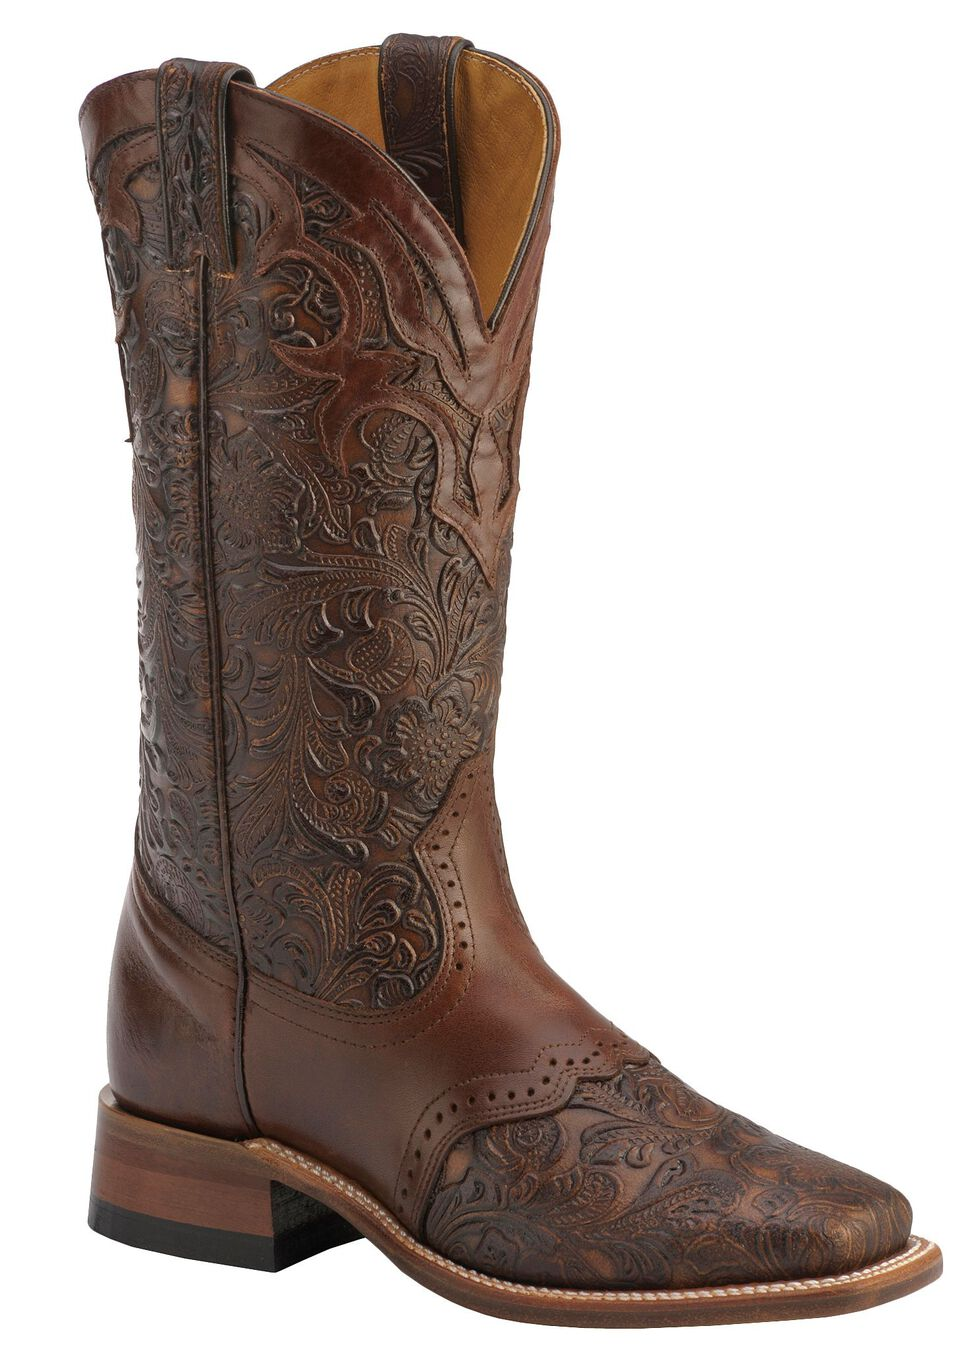 Boulet Hand Tooled Ranger Cowgirl Boots - Square Toe, Chestnut, hi-res